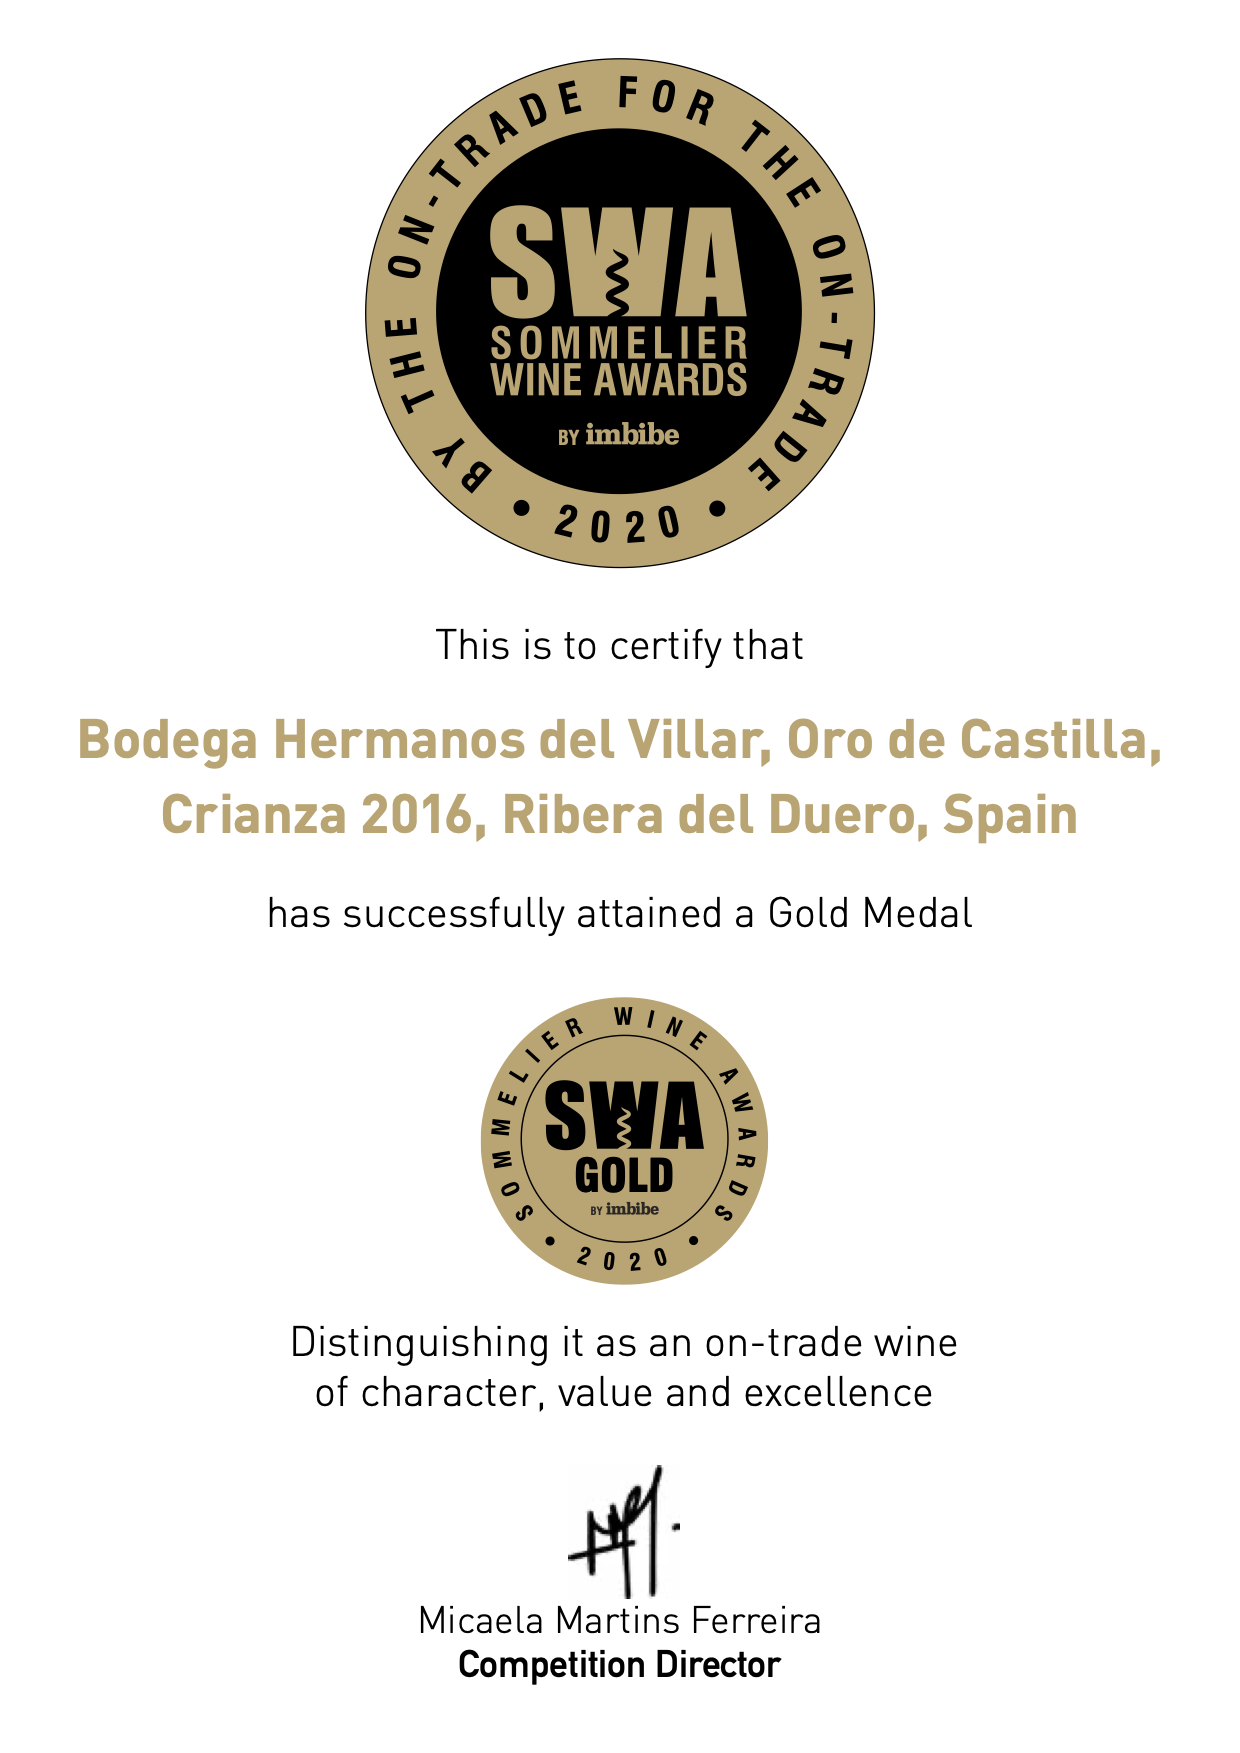 crianza-sommelier-wine-awards-2020